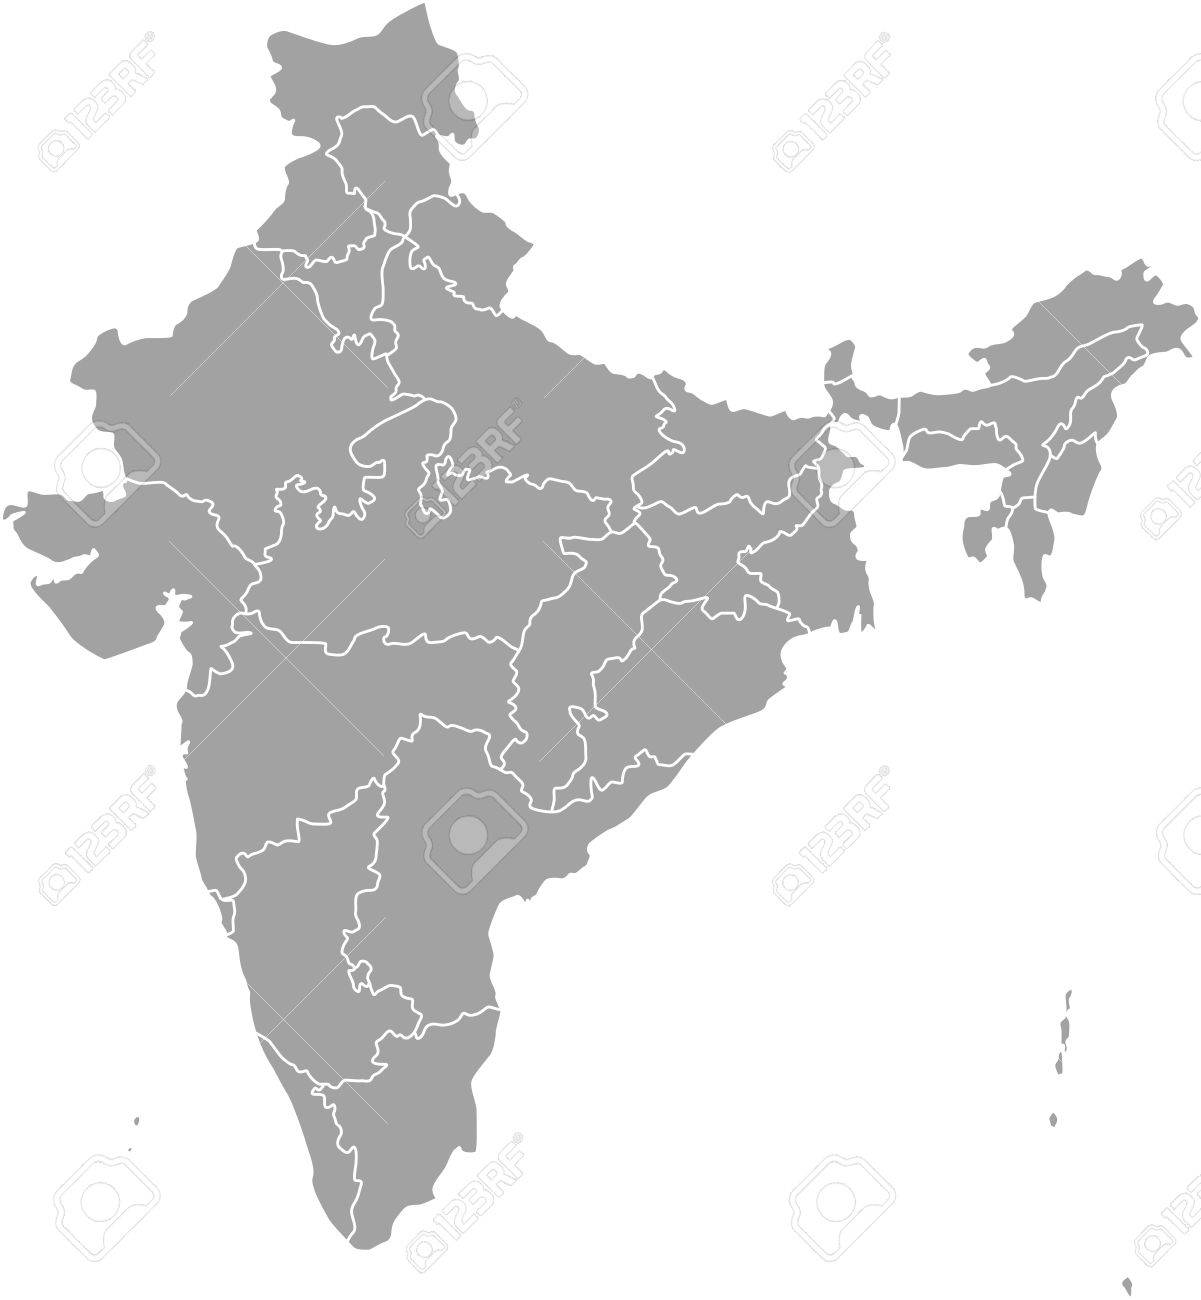 India Map Outline With Borders Of Provinces Or States Royalty Free